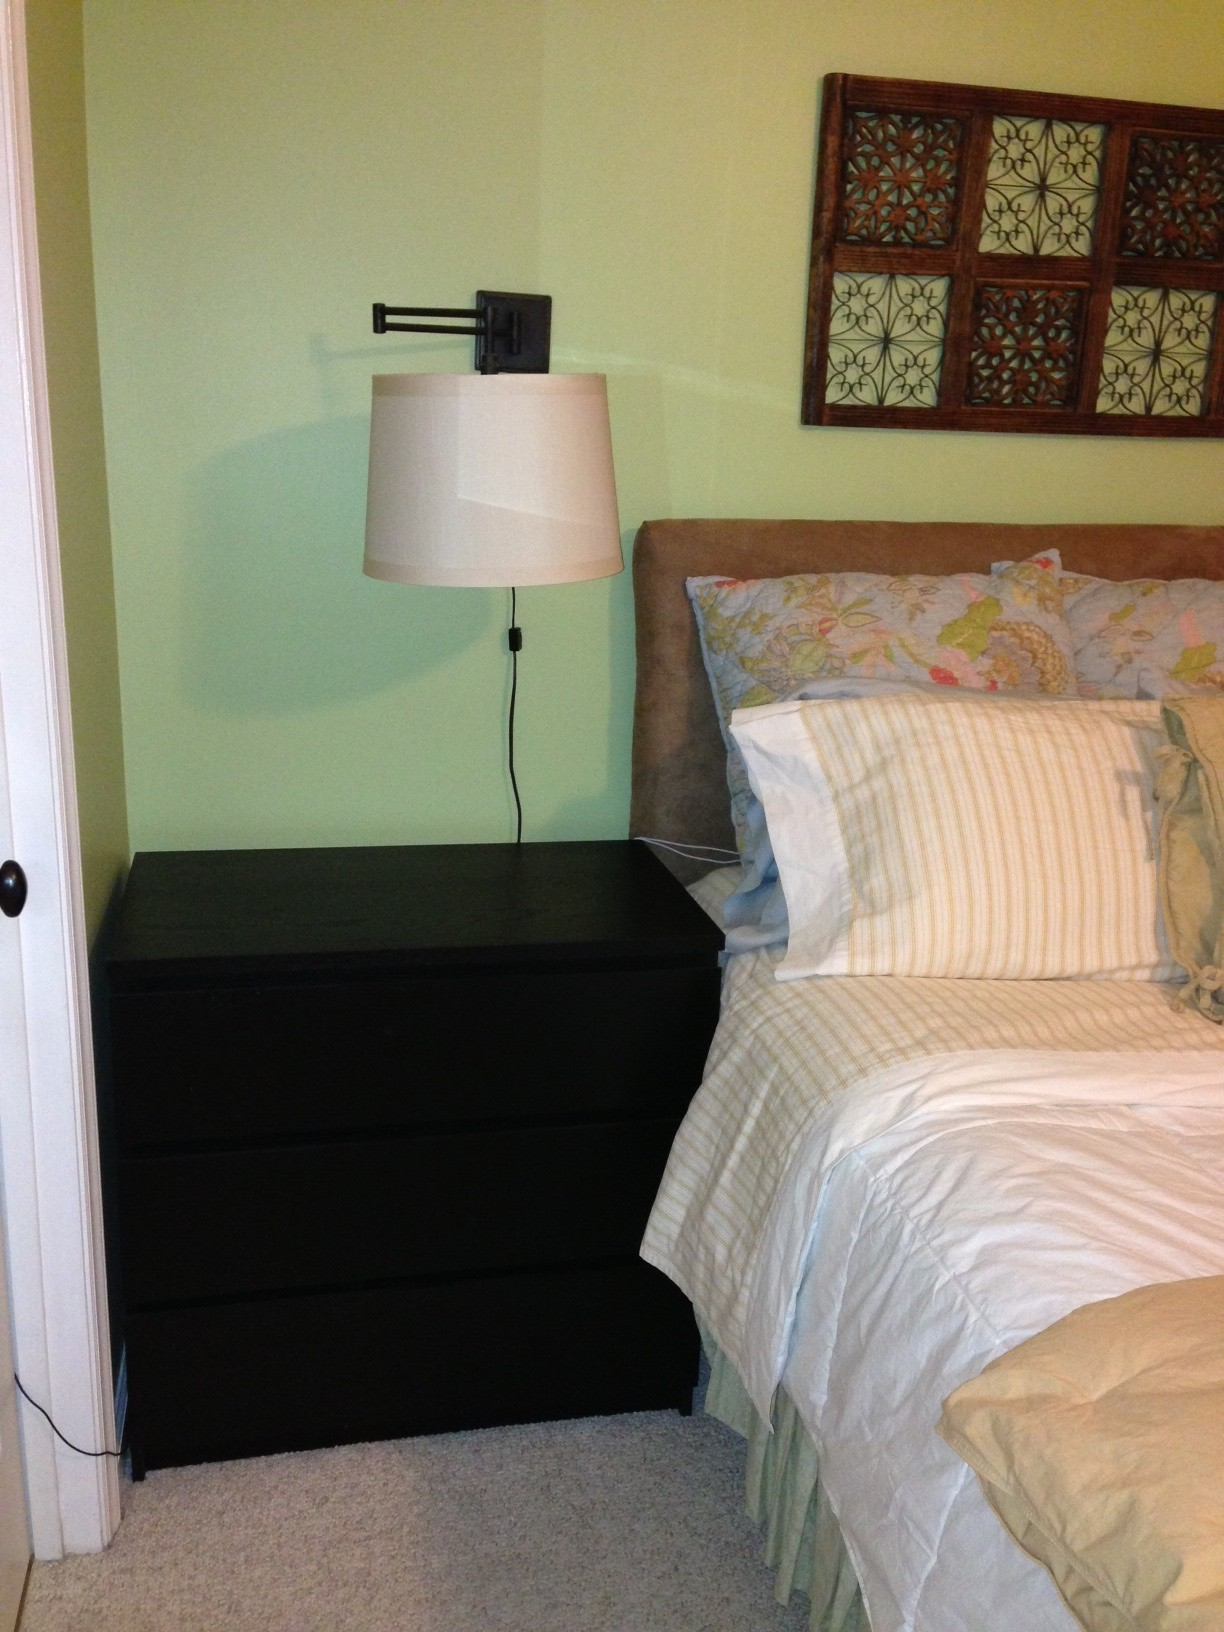 Malm end table fabulous black brown malm nightstand for inspiring bedroom furniture ideas with - Malm bed with nightstands ...